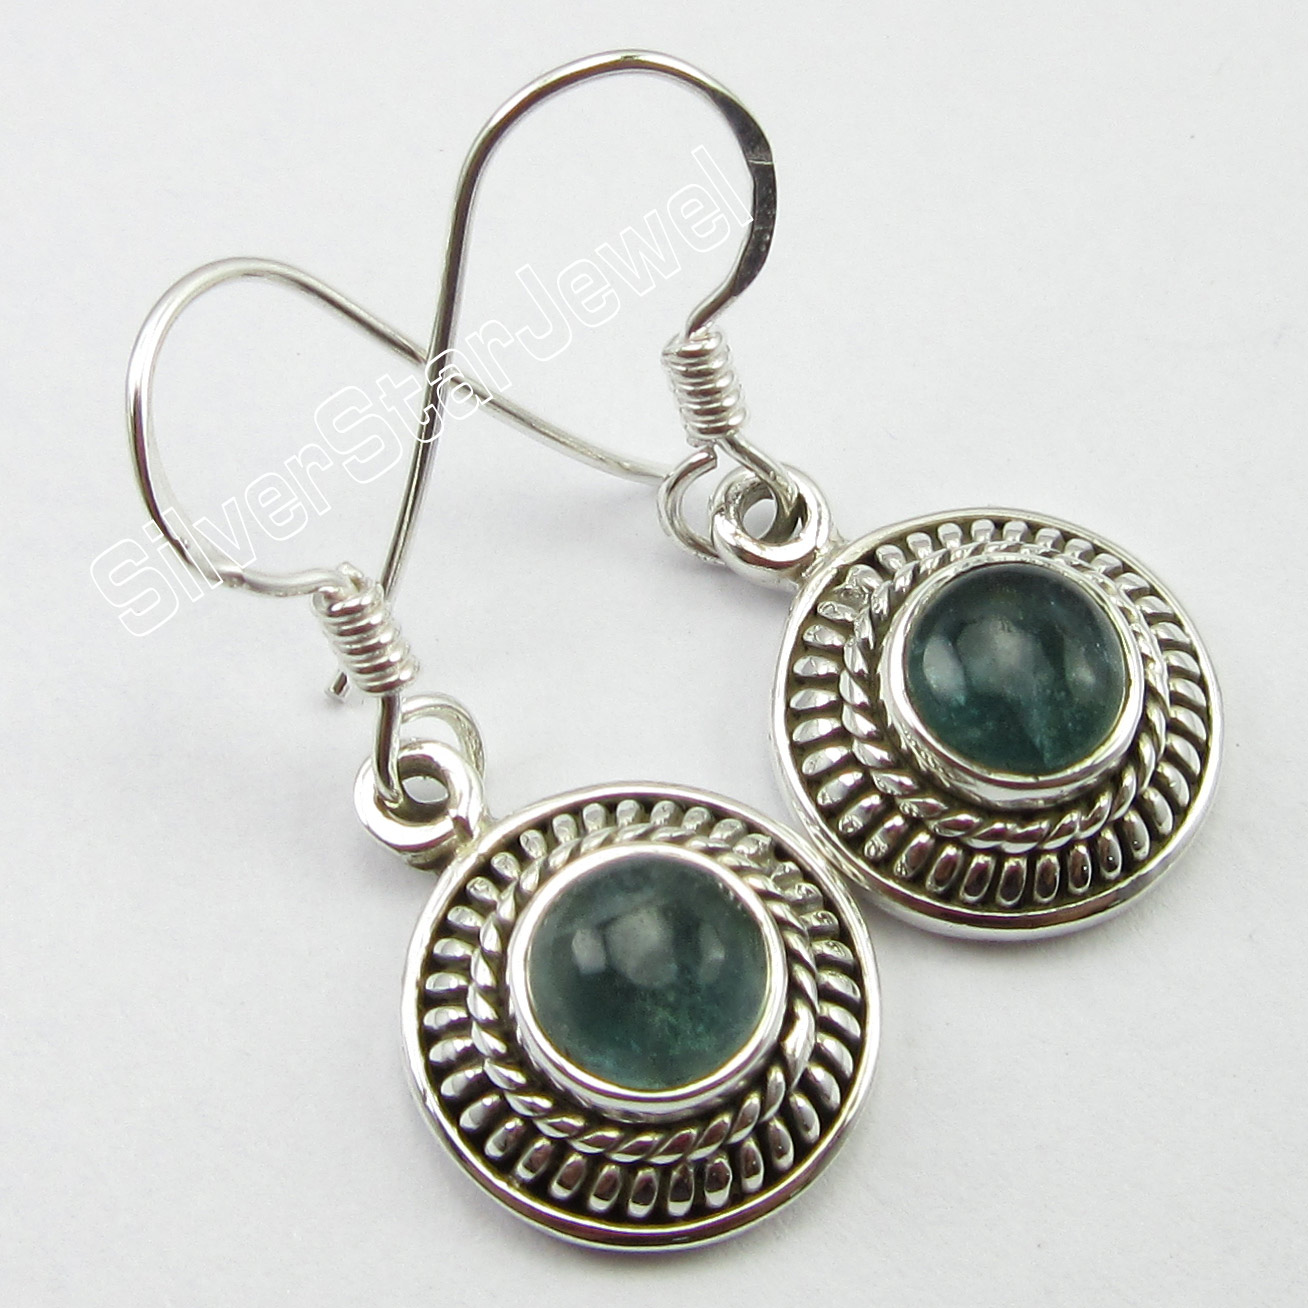 THEME-RETRO-925-Silver-Authentic-APATITE-Gem-HANDCRAFTED-Earrings-3-0-CM